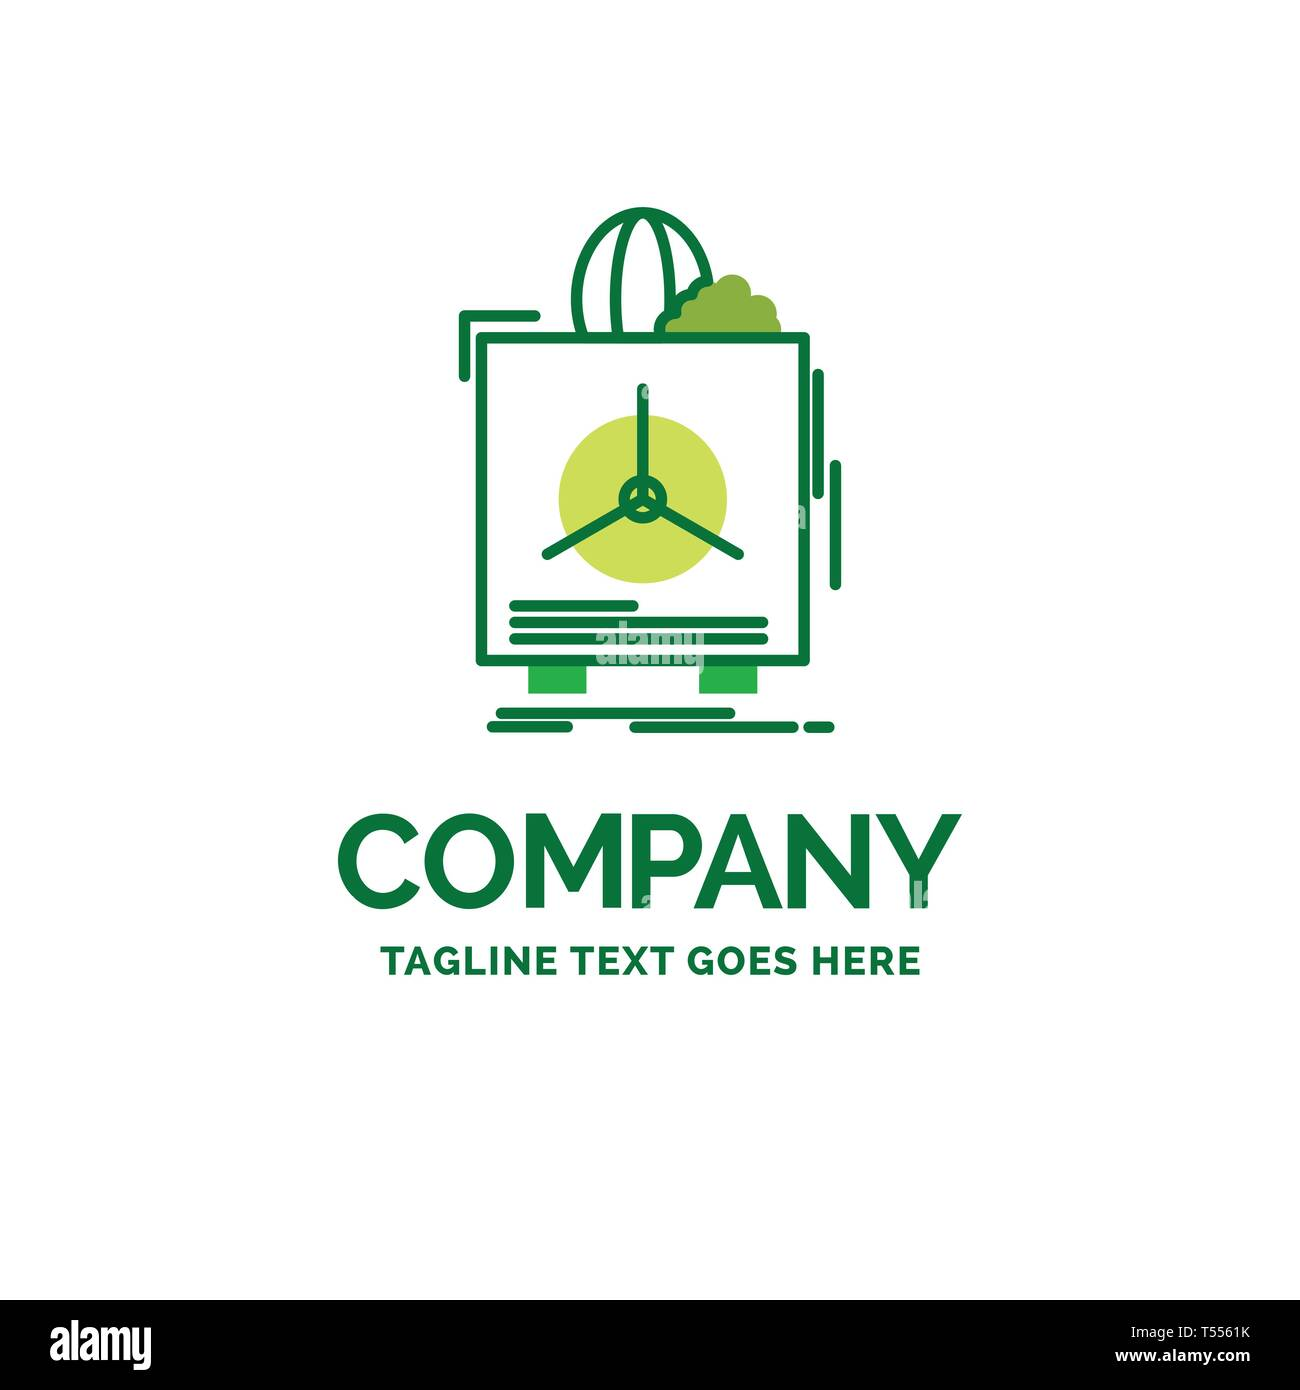 insurance, Fragile, product, warranty, health Flat Business Logo template. Creative Green Brand Name Design. - Stock Image